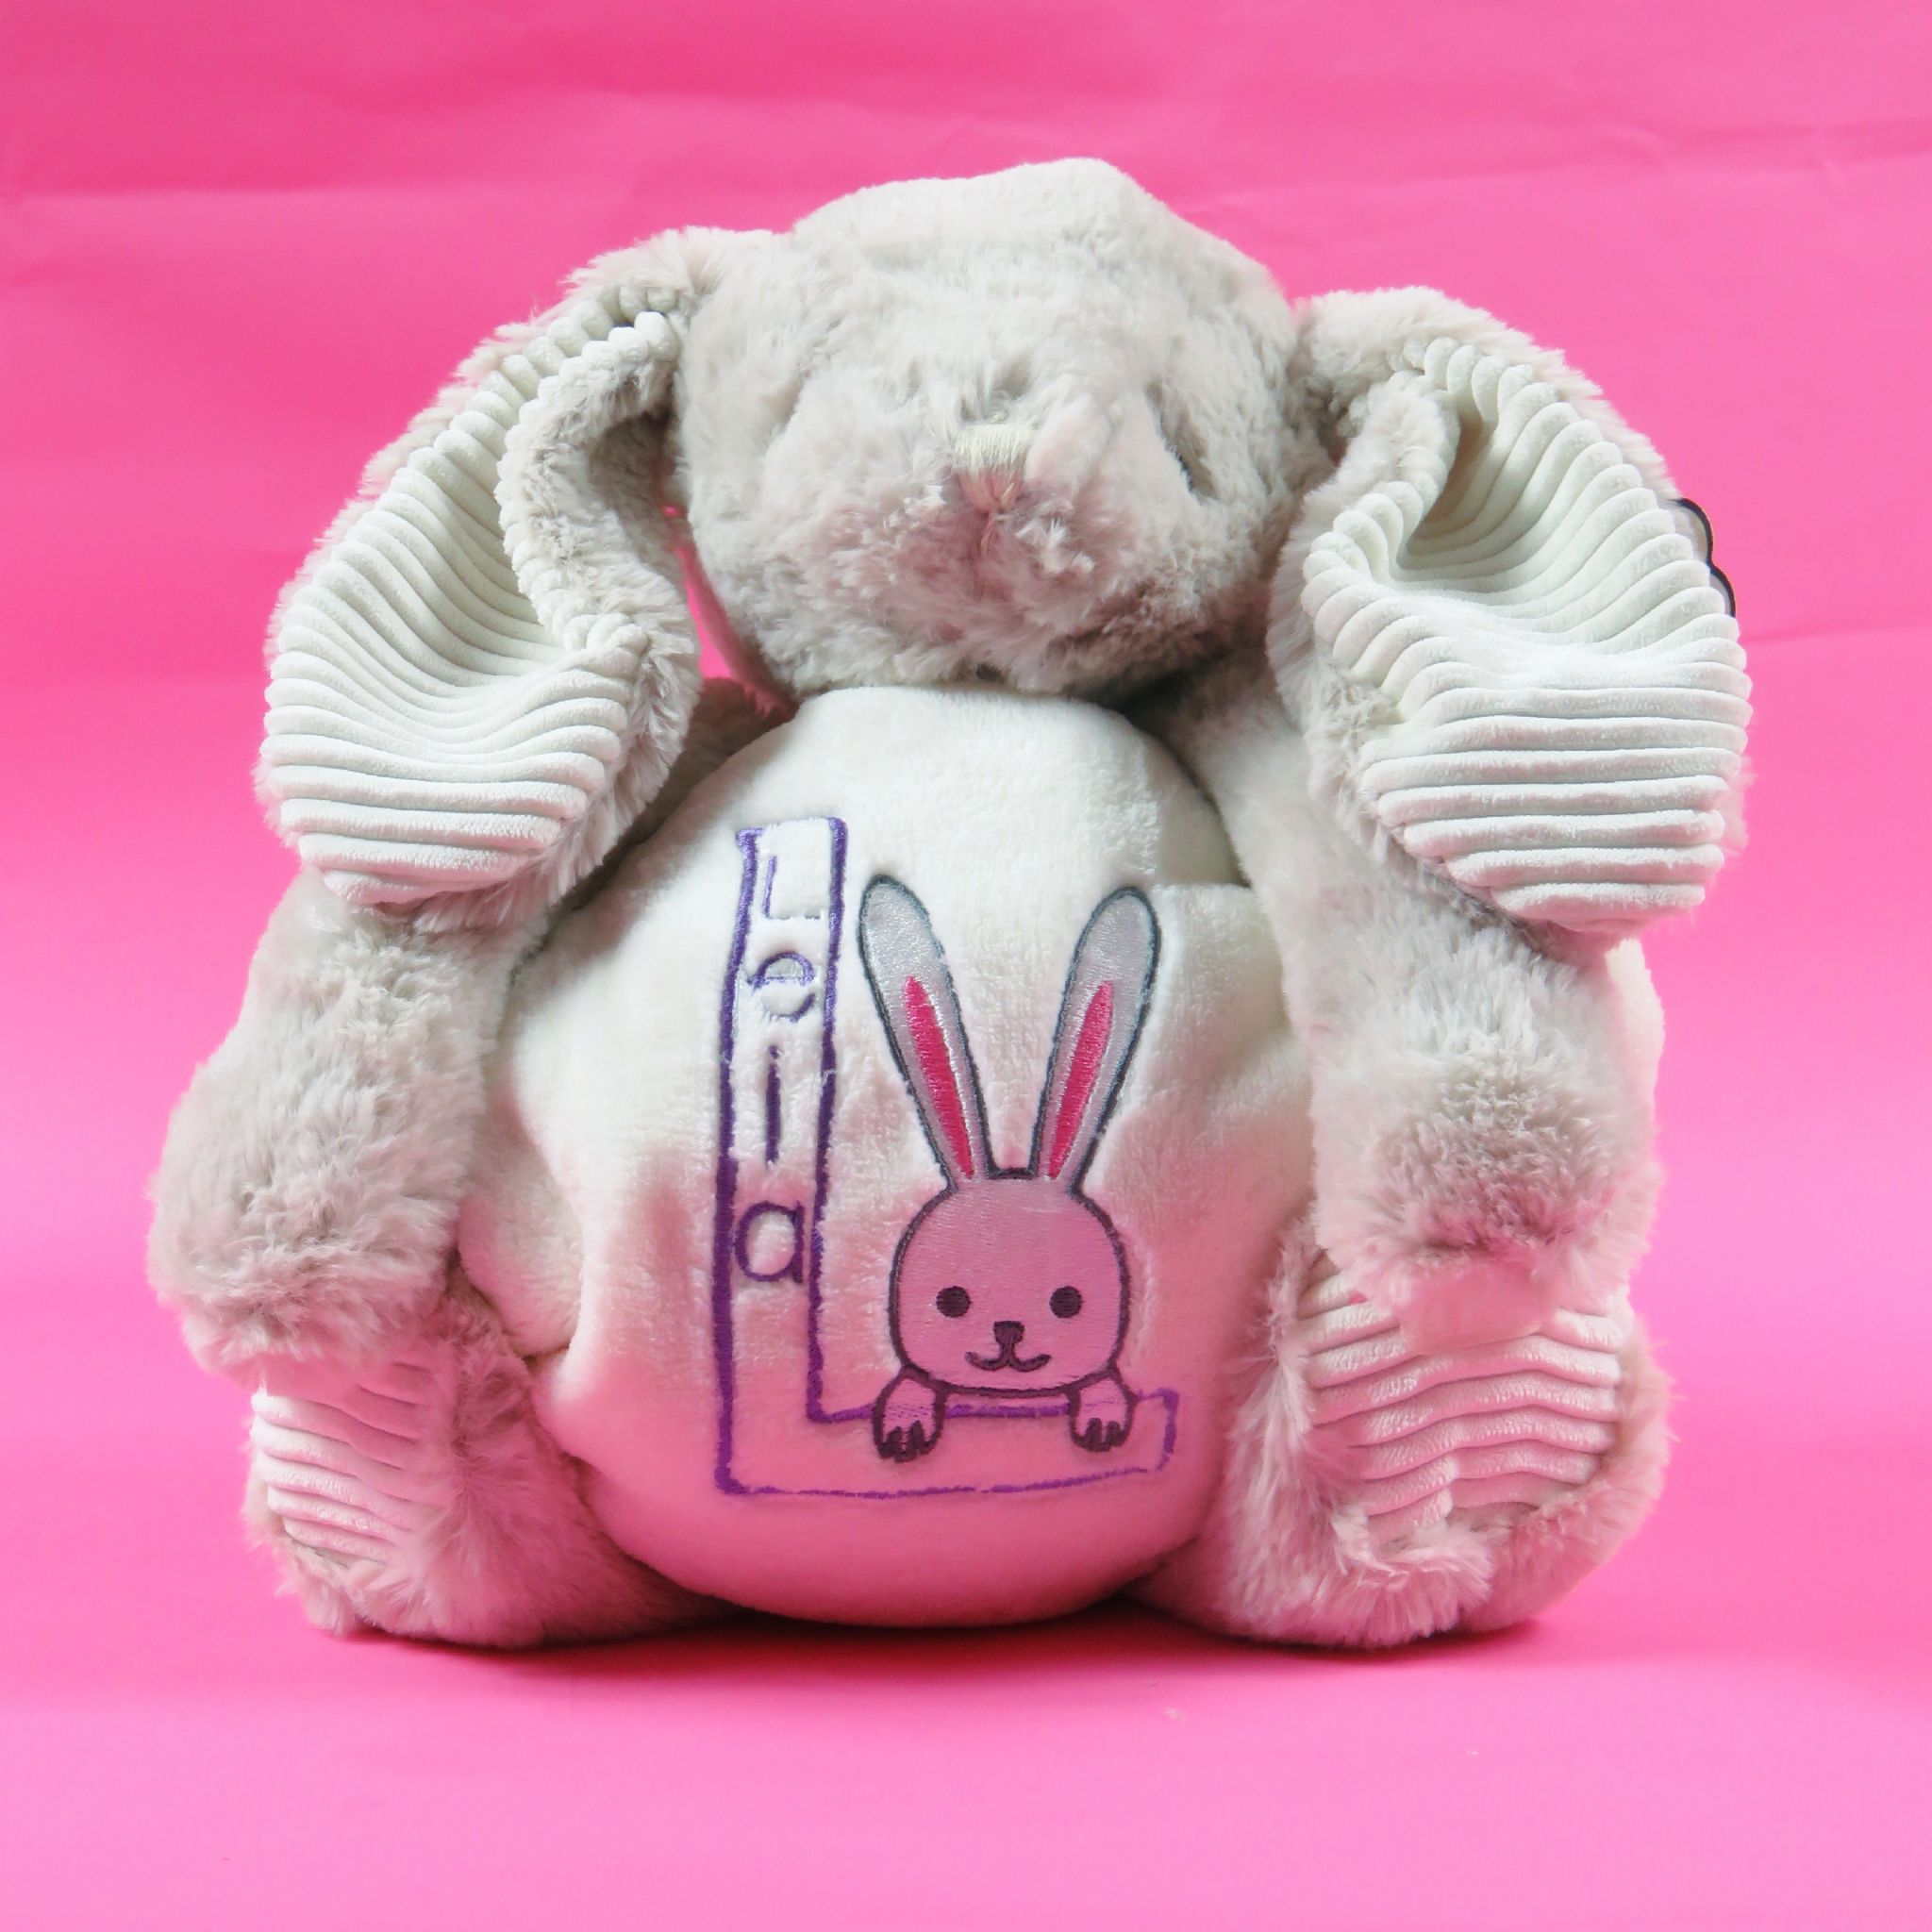 Personalised rabbit soft toy and blanket embroidered new born baby personalised rabbit soft toy and blanket embroidered new born baby gift bunny easter present persona negle Image collections